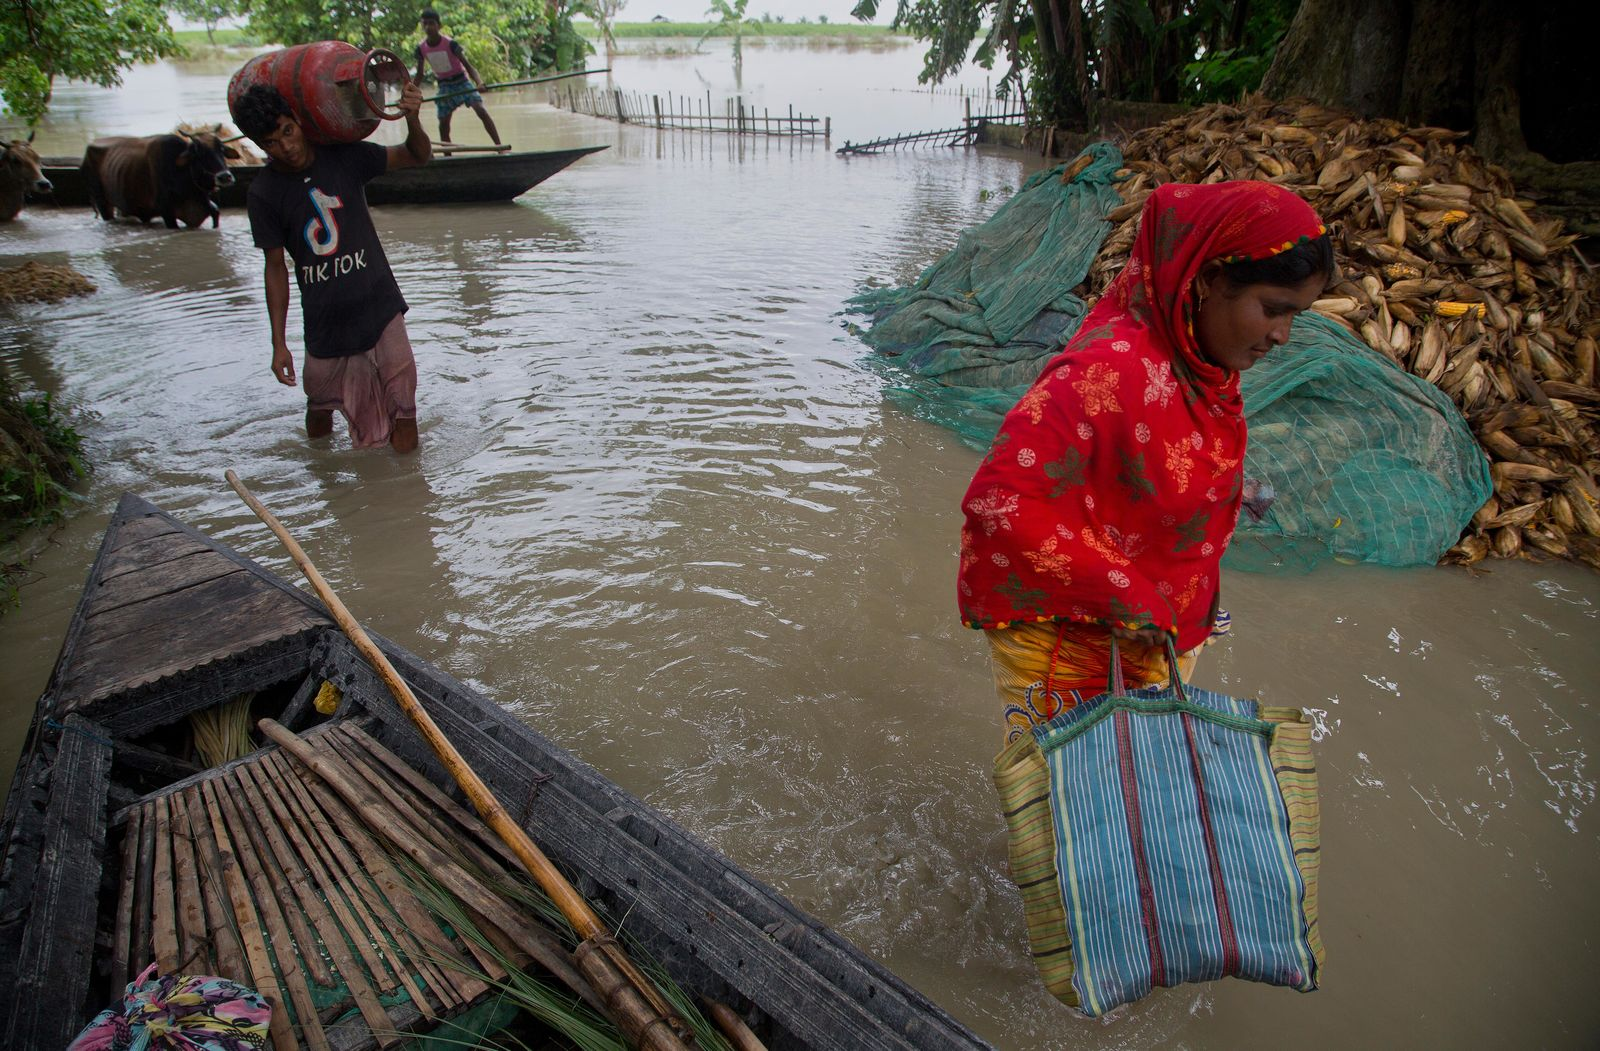 Indian villagers with their belongings wade through flood water in Katahguri village along the river Brahmaputra, east of Gauhati, India, Sunday, July 14, 2019. Officials in northeastern India said more than a dozen people were killed and over a million affected by flooding. Rain-triggered floods, mudslides and lightning have left a trail of destruction in other parts of South Asia. (AP Photo/Anupam Nath)